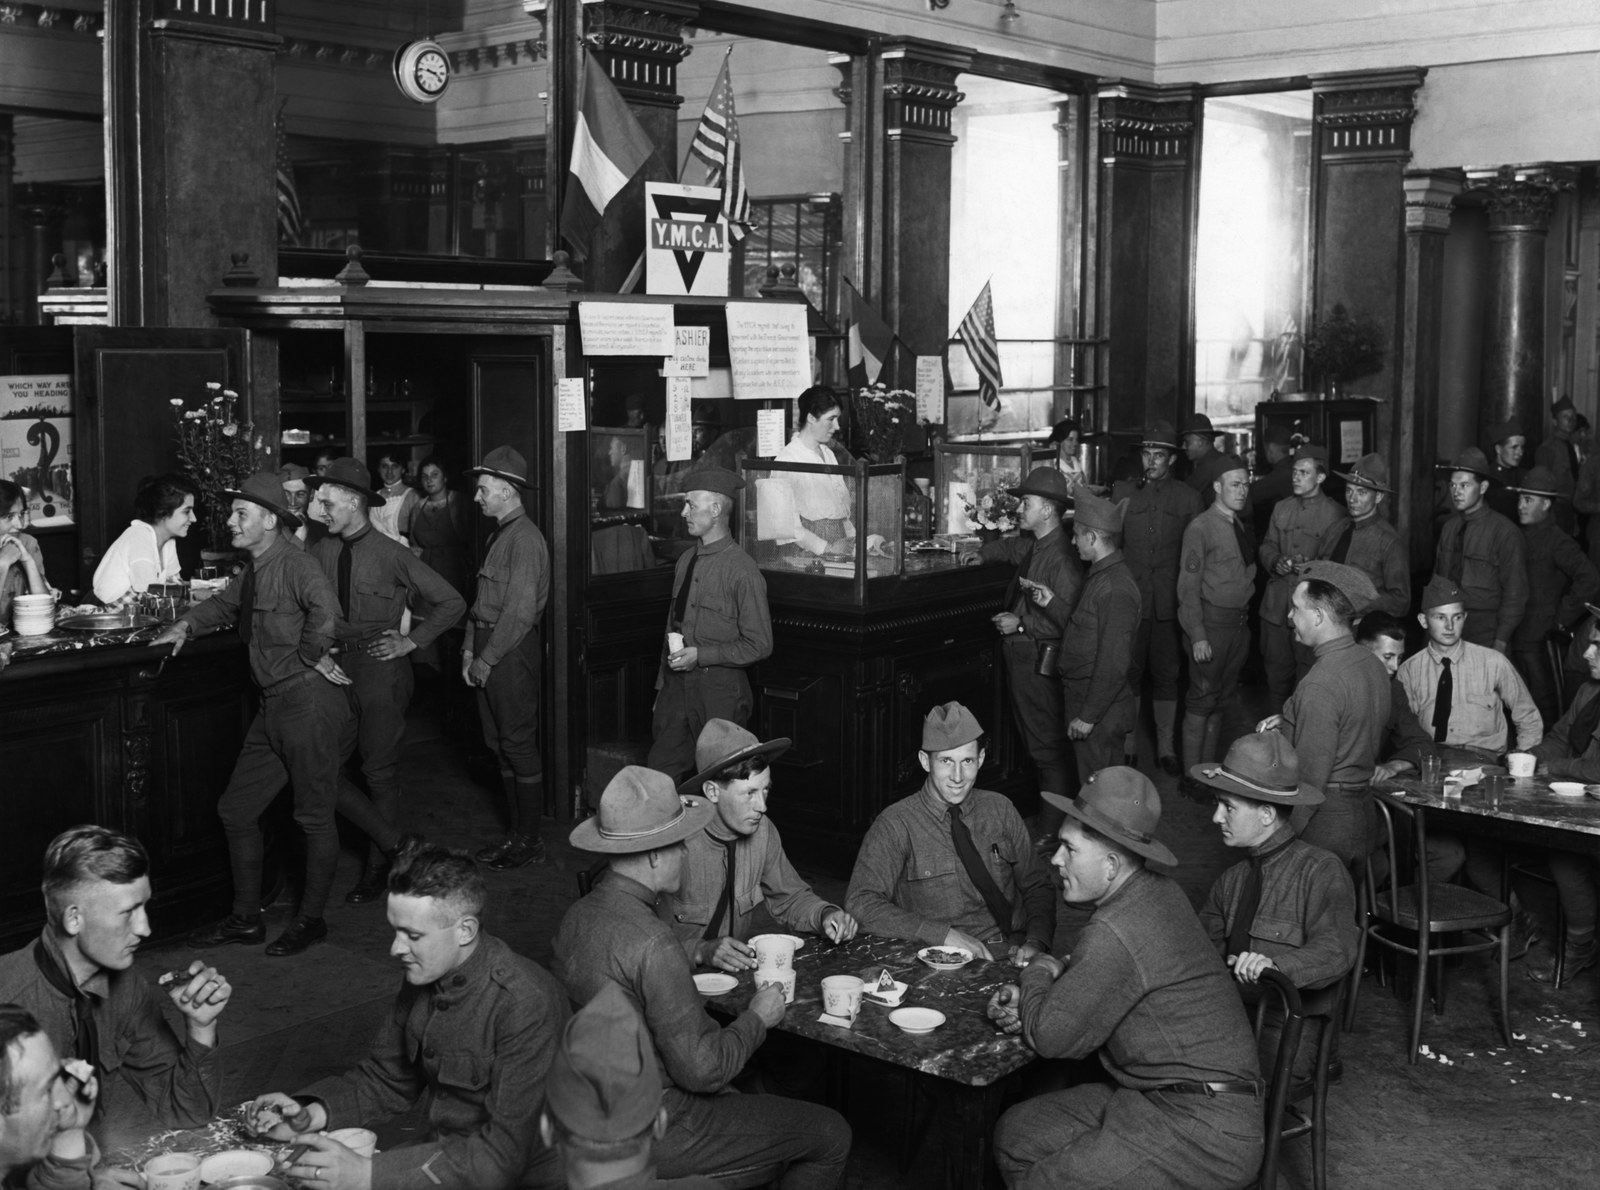 Interior of the casino in Aix-les-Bains, France, now used by the YMCA, showing the old bar in La Salle de Bacchus. YMCA girls are serving refreshments to the boys (circa 1918).